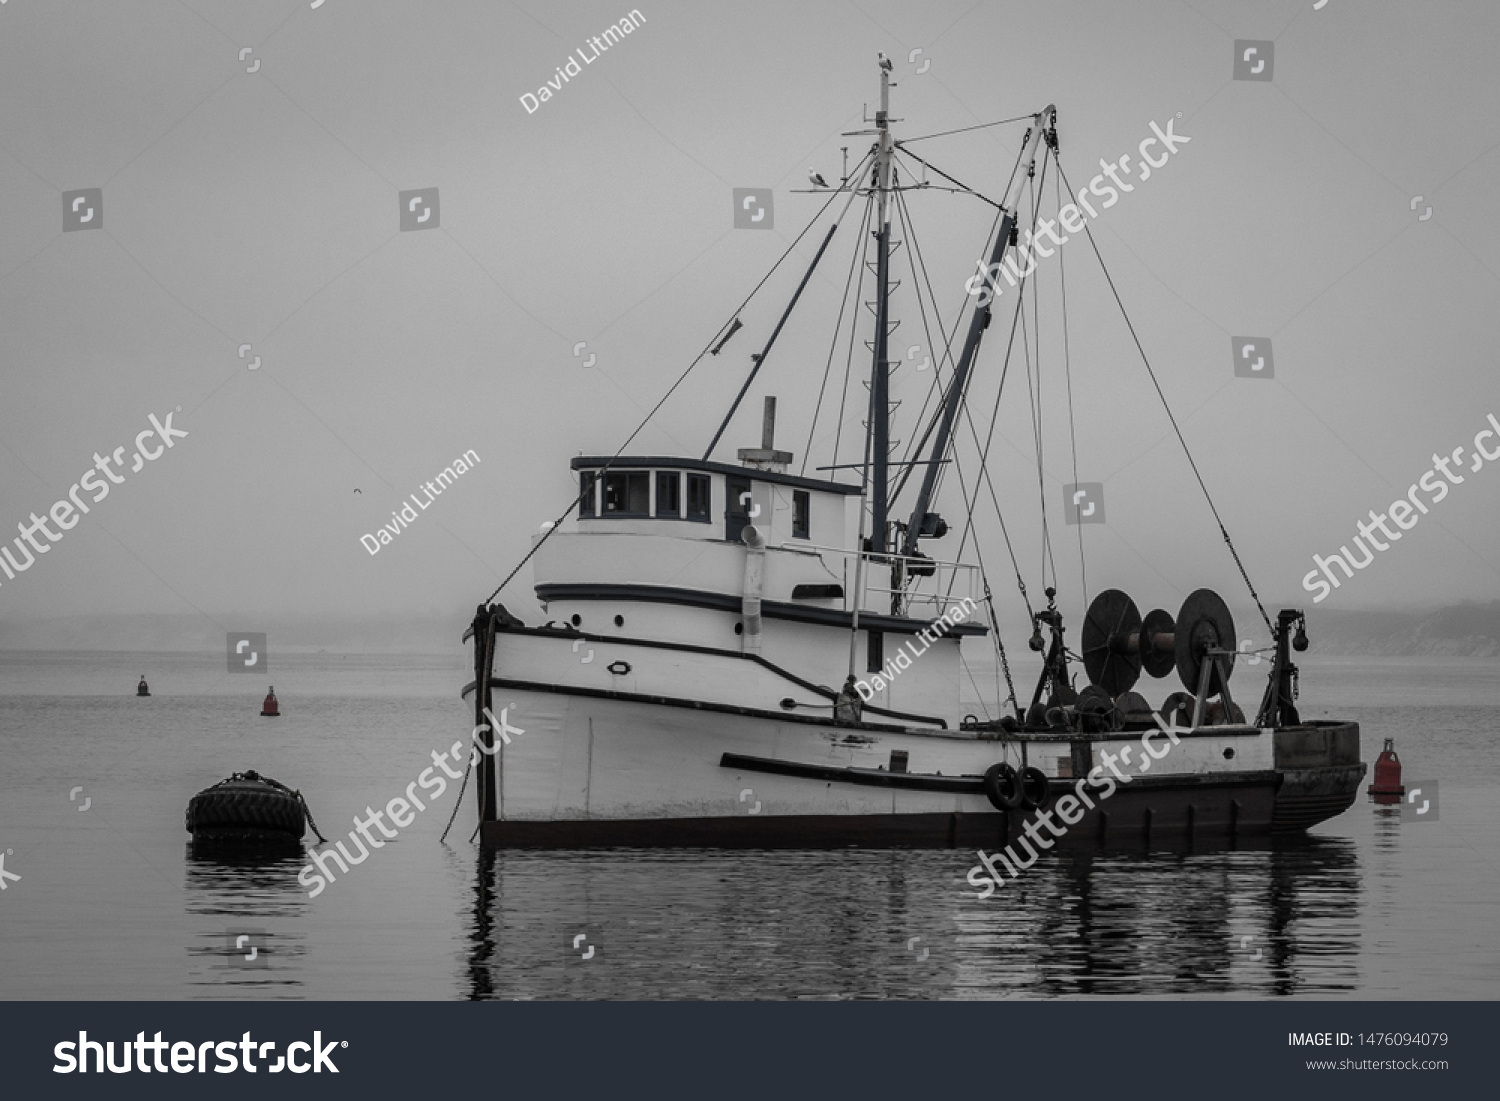 Black and white image of an old fishing boat moored in the Monterey Harbor and Marina along the Monterey Bay of central California.